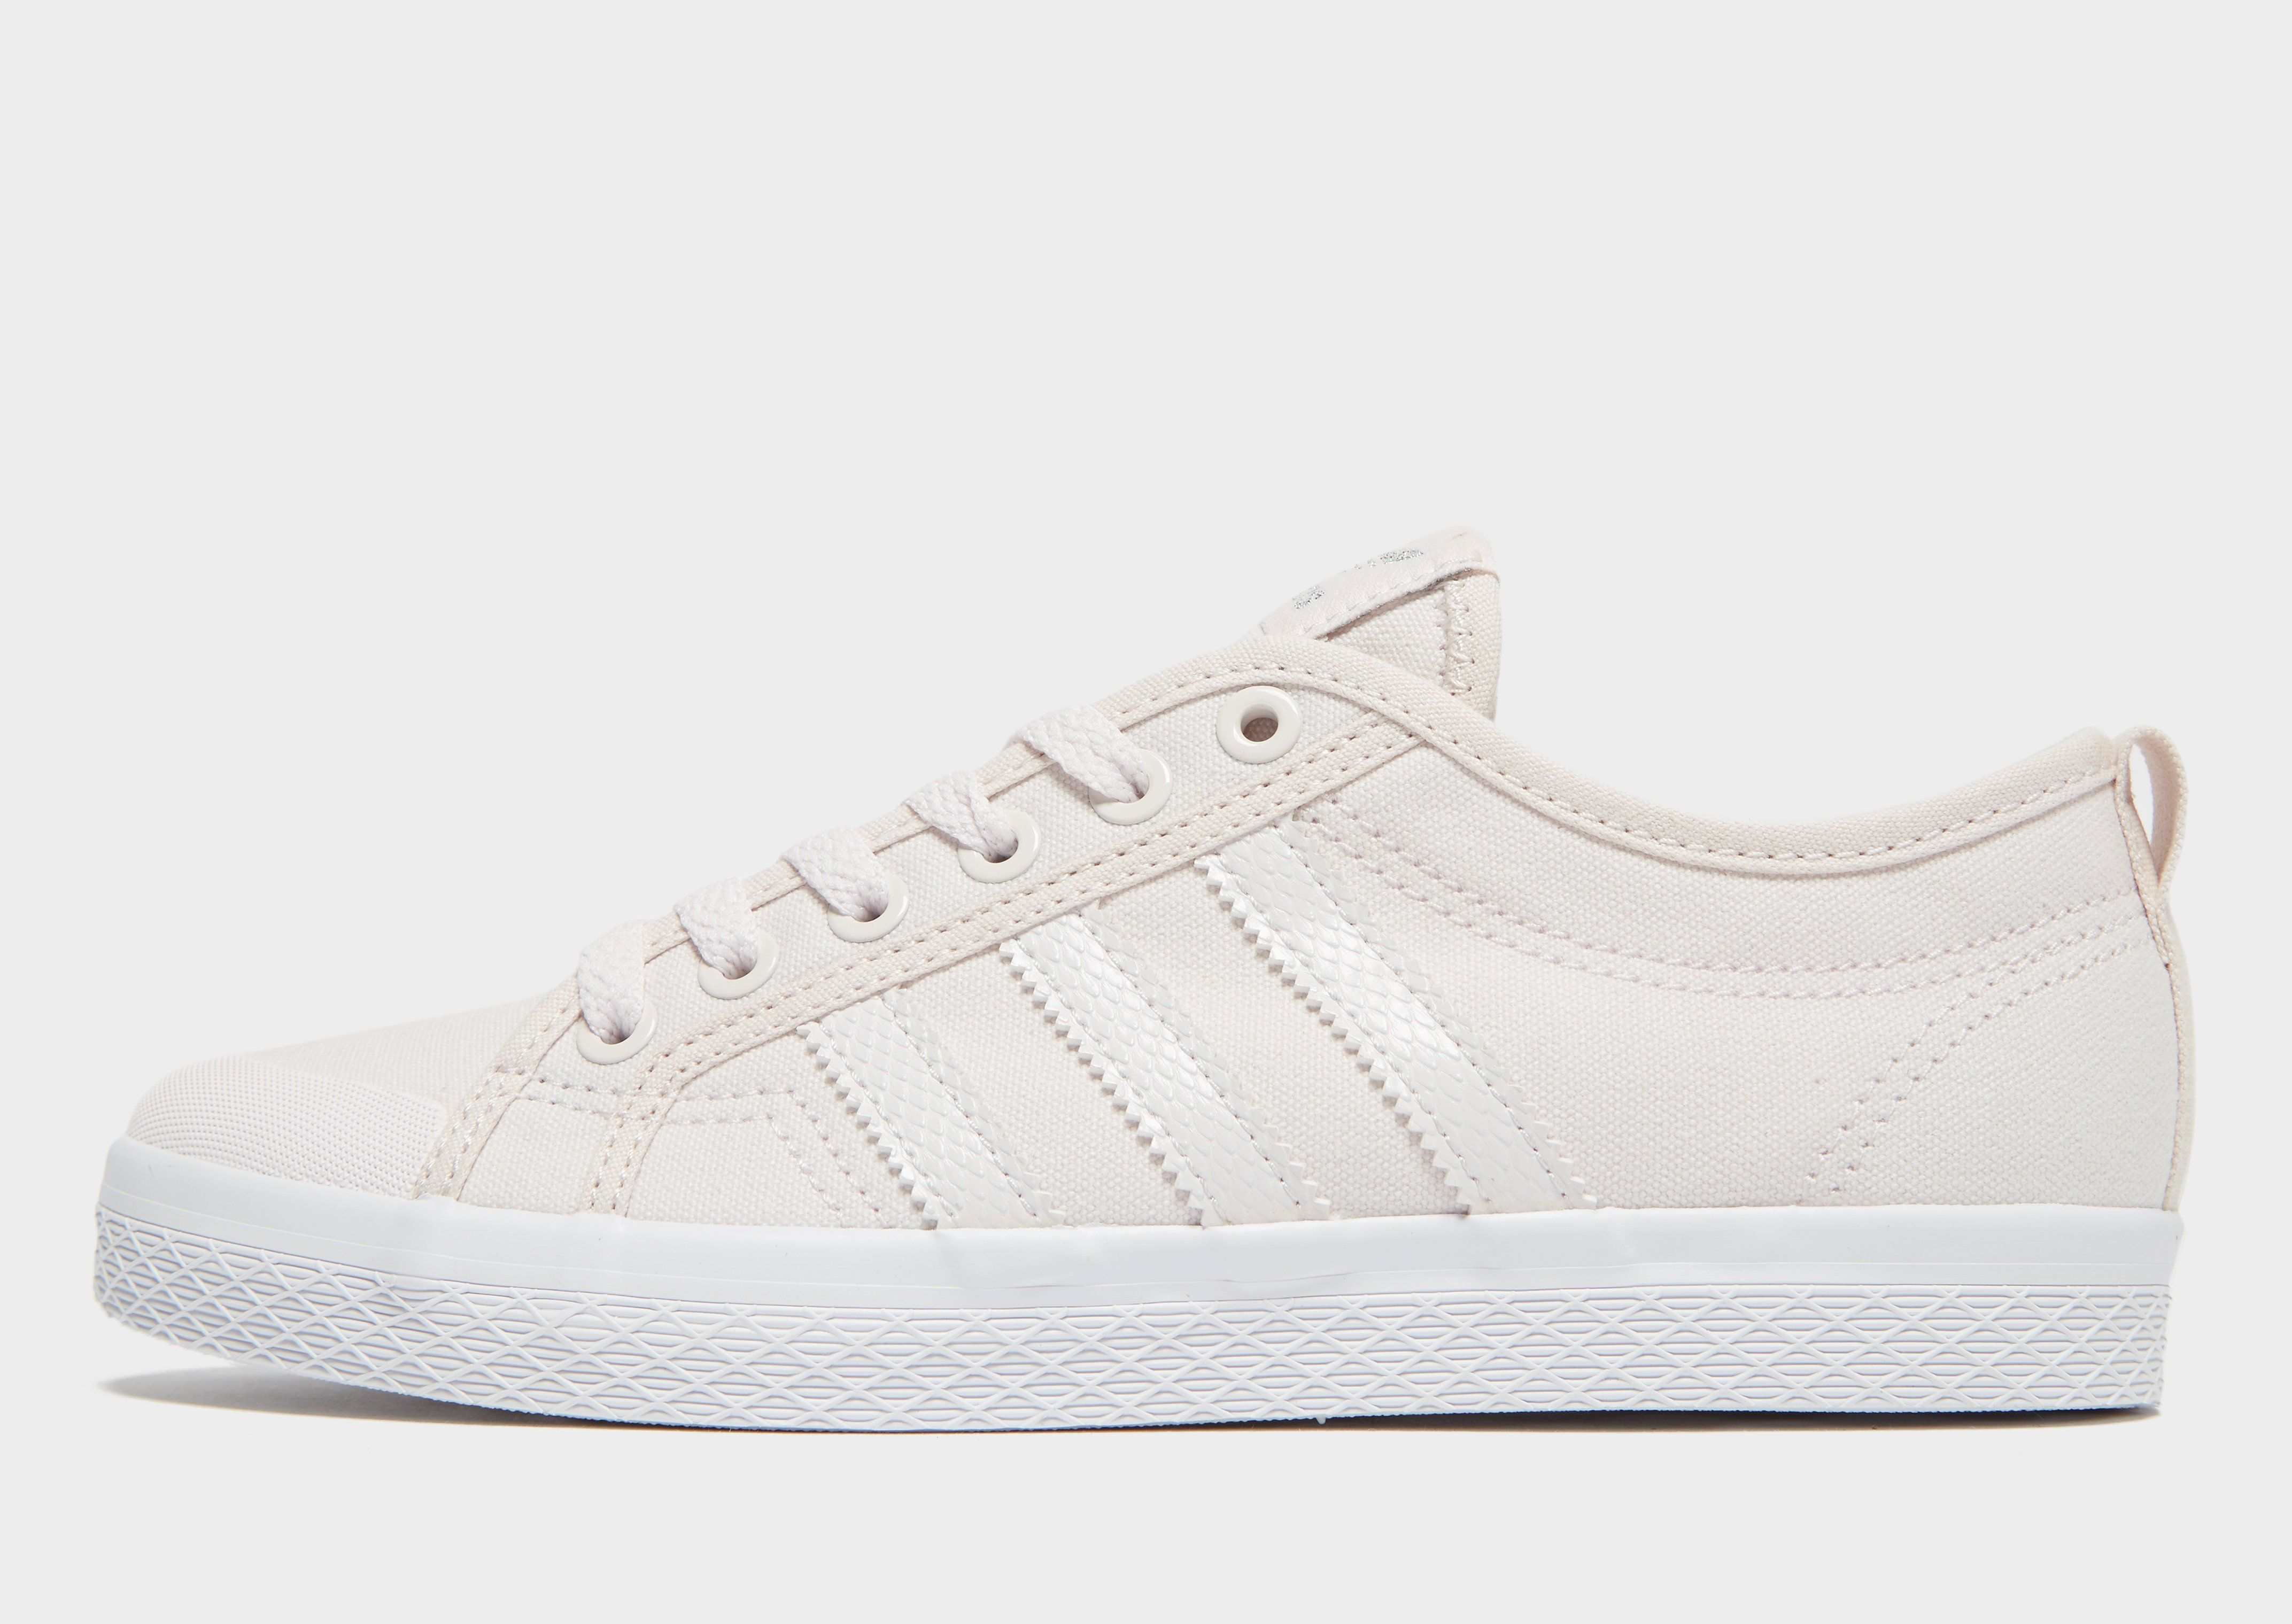 adidas Originals Honey Lo Dames - Adidas originals, Yeezy en ...